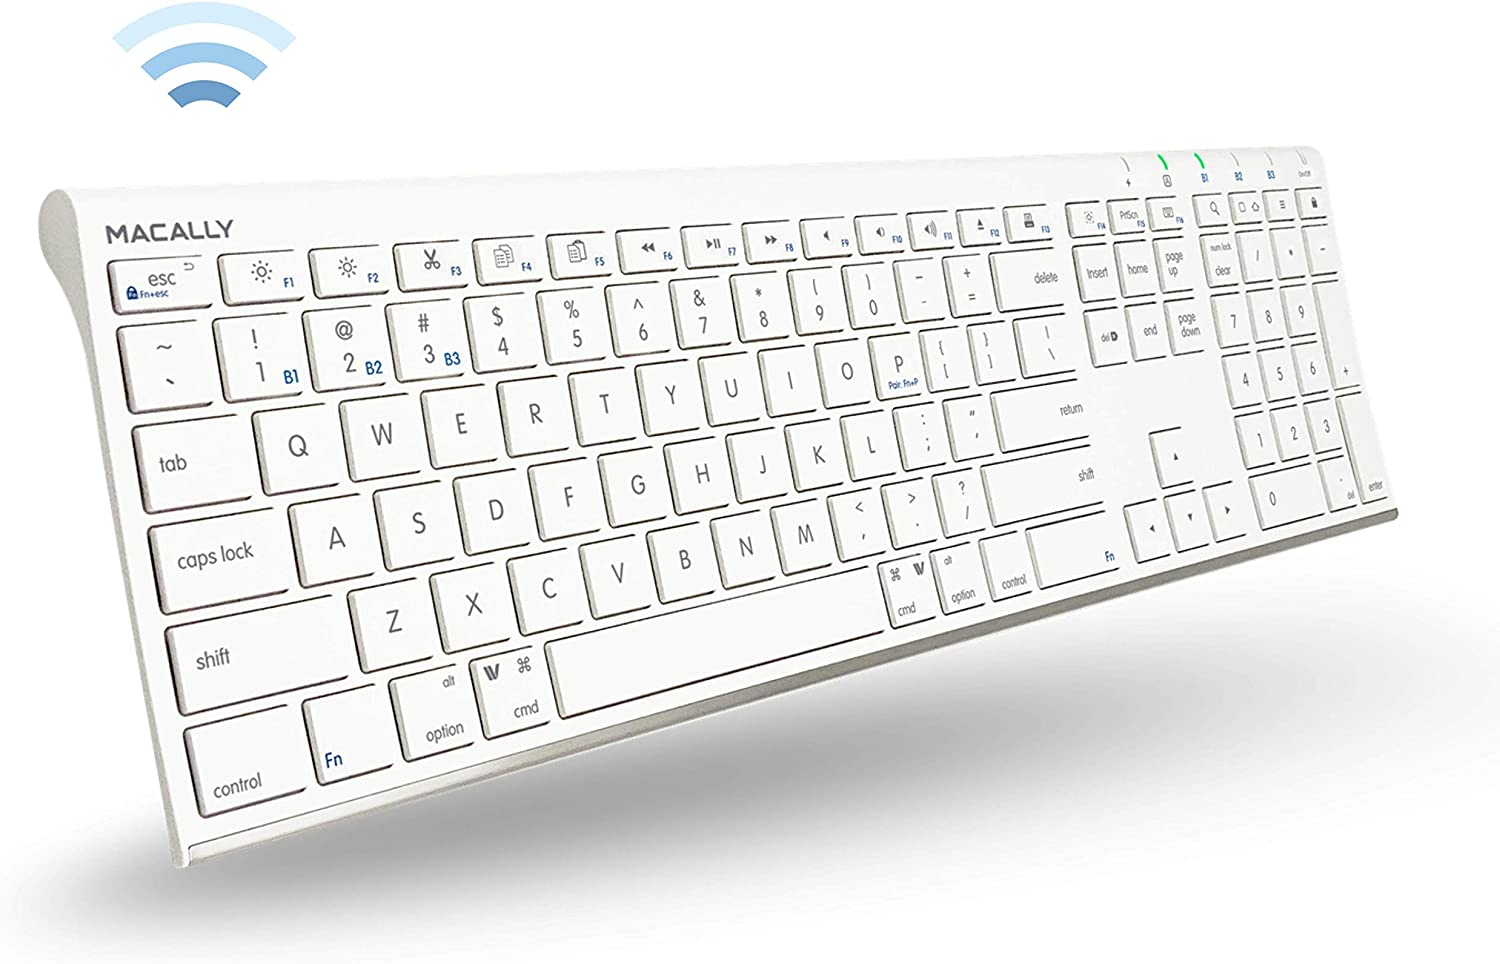 Macally Wireless Bluetooth Keyboard for Mac or PC - Connect up to 3 Devices Simultaneously - Rechargeable Mac Wireless Keyboard Apple with 110 Keys, 20 Shortcuts, and Numeric Keypad - White